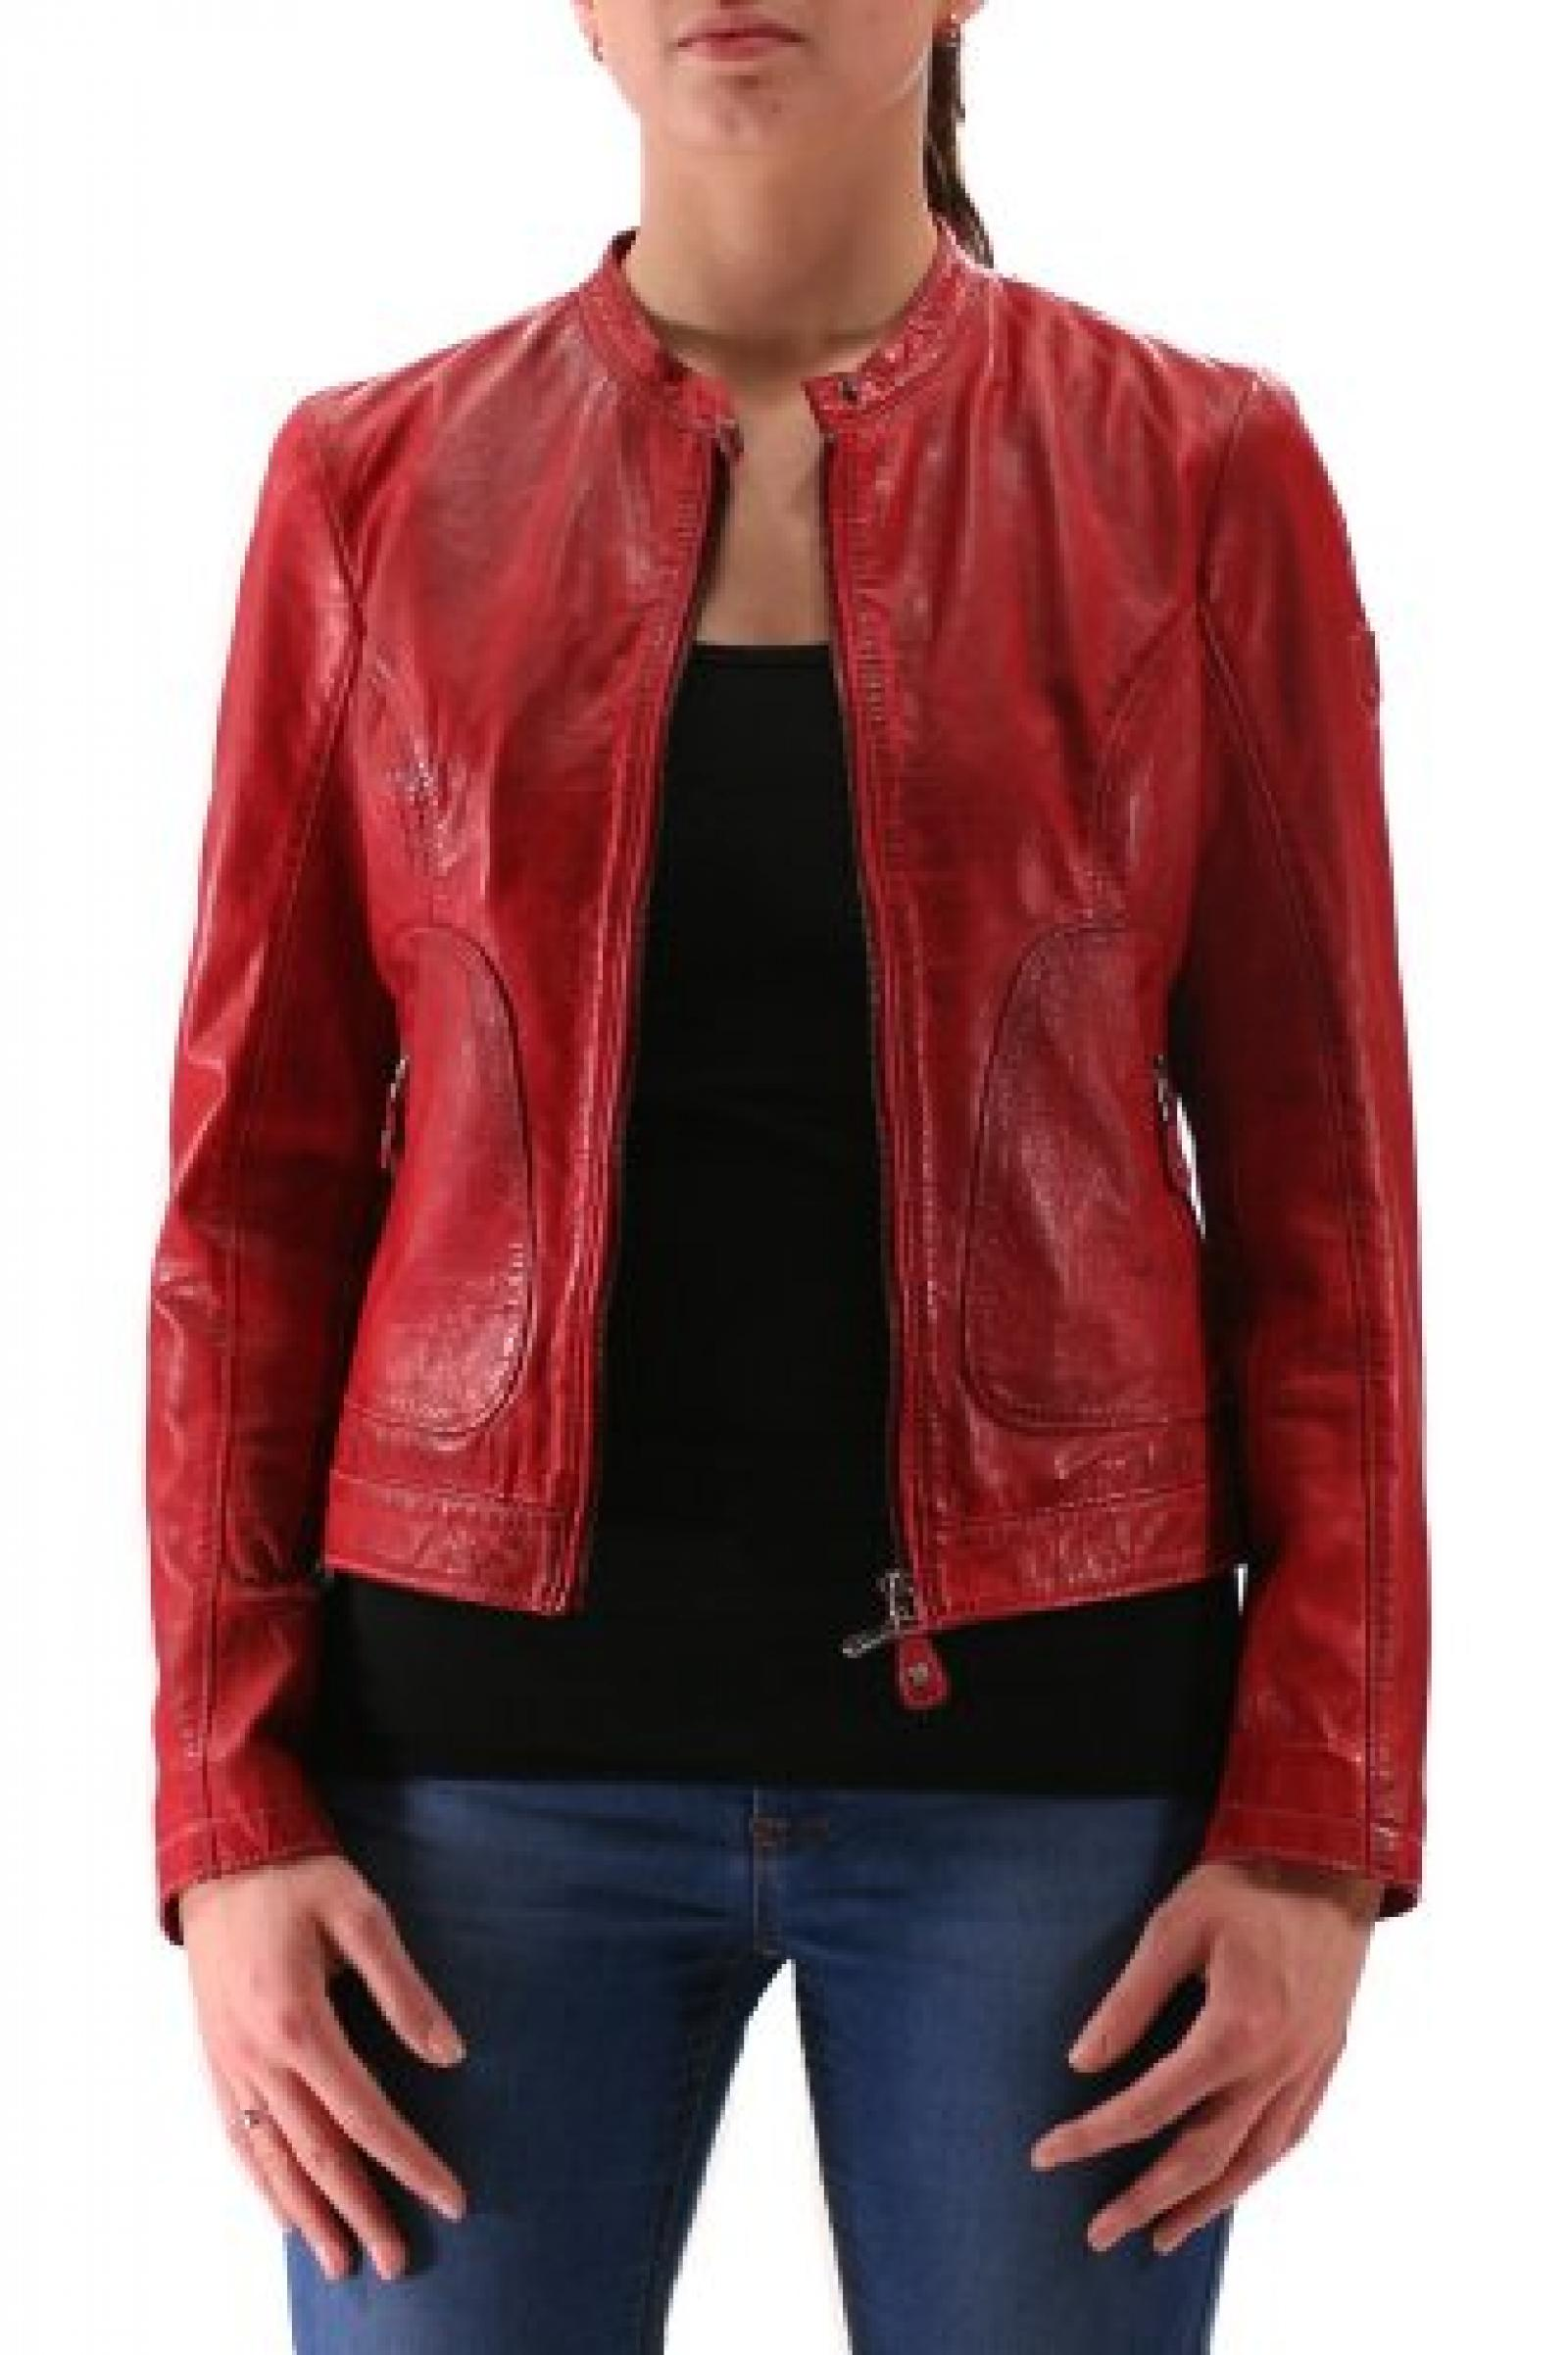 Celin 3 Lacal red Mauritius Lederjacke, Damen, Outerwear